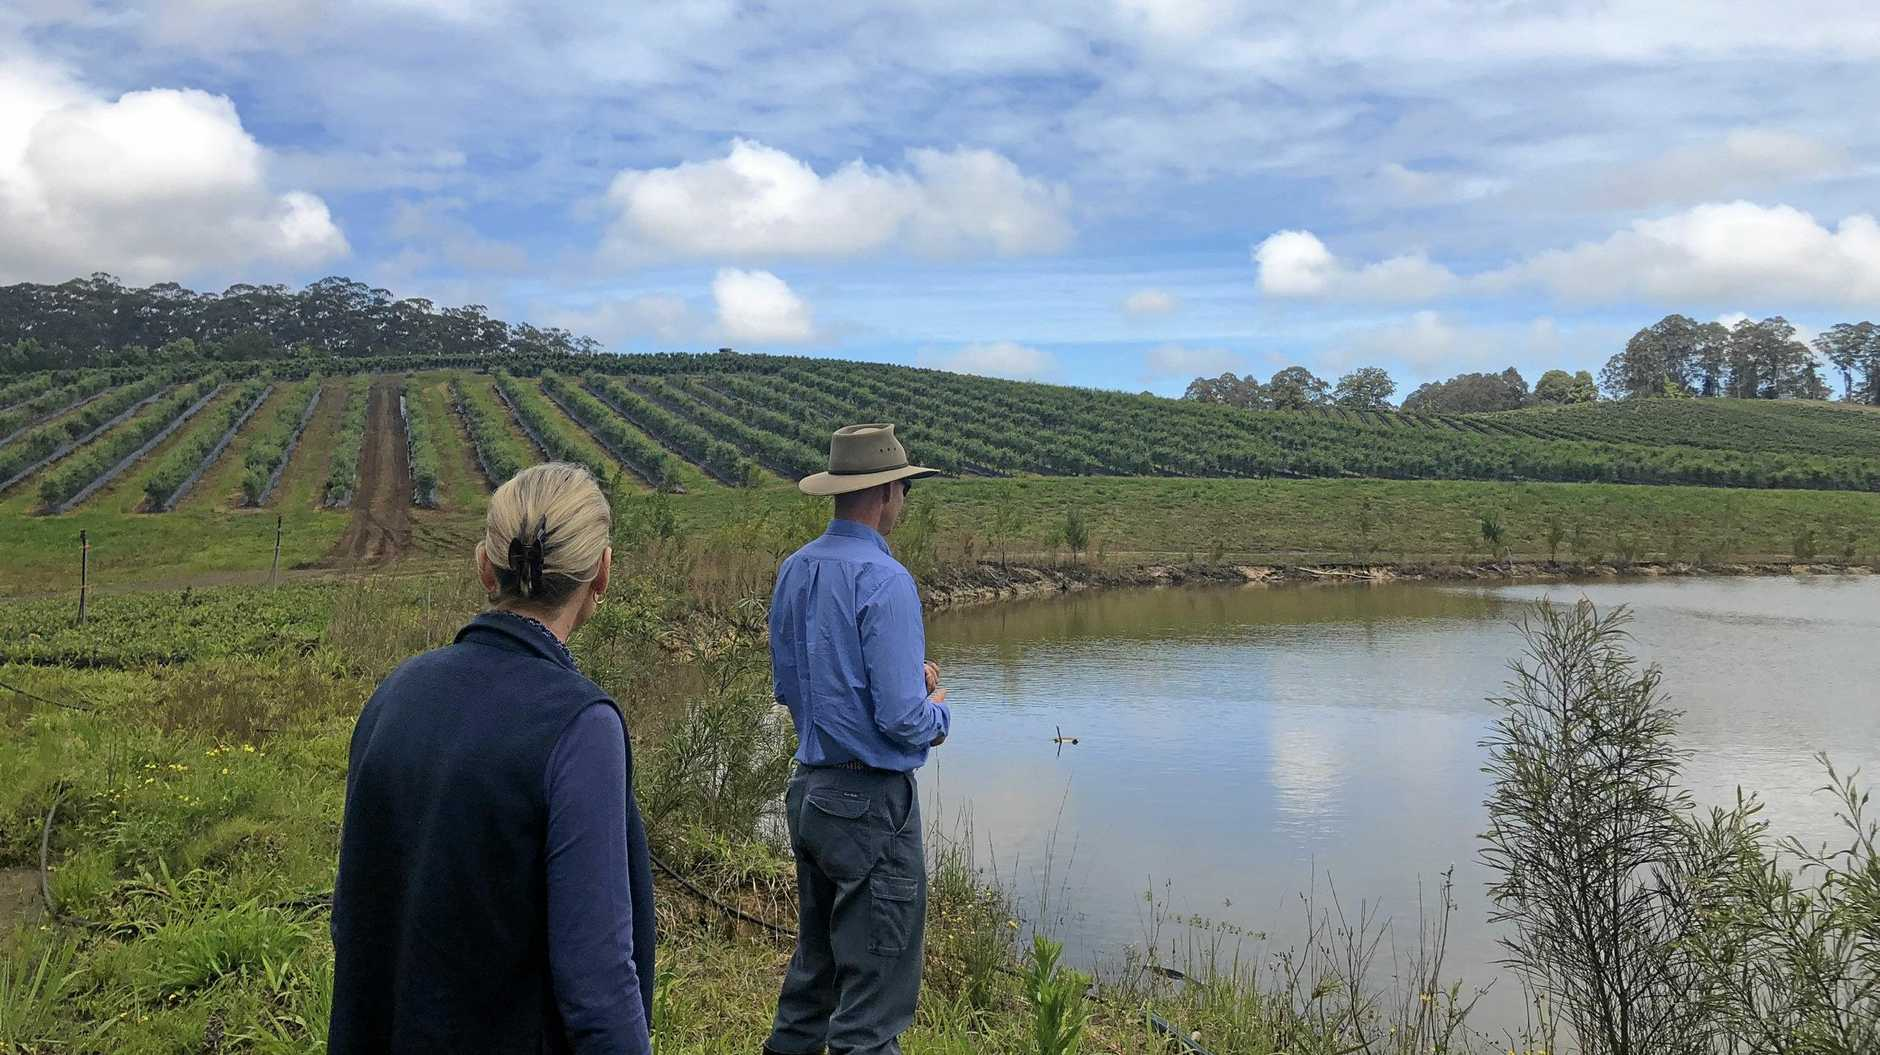 The Natural Resources Access Regulator (NRAR) will visit Coffs Harbour fruit and vegetable farms to check they're complying with water management laws.